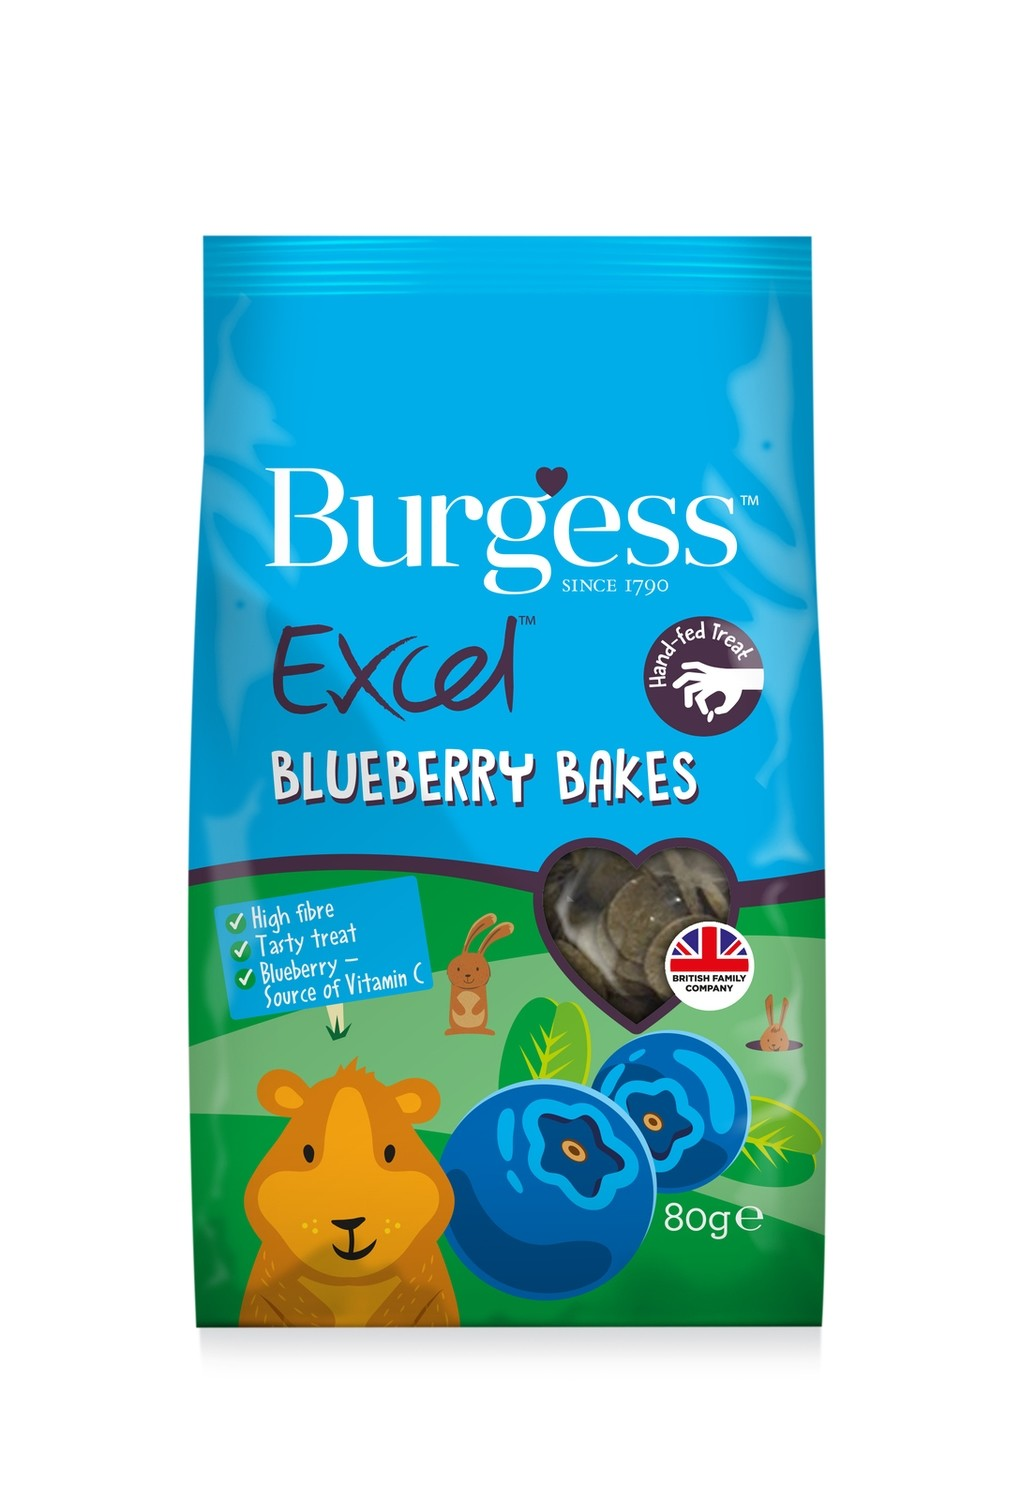 Burgess Excel Blueberry Bakes 80g (coming 18/12)